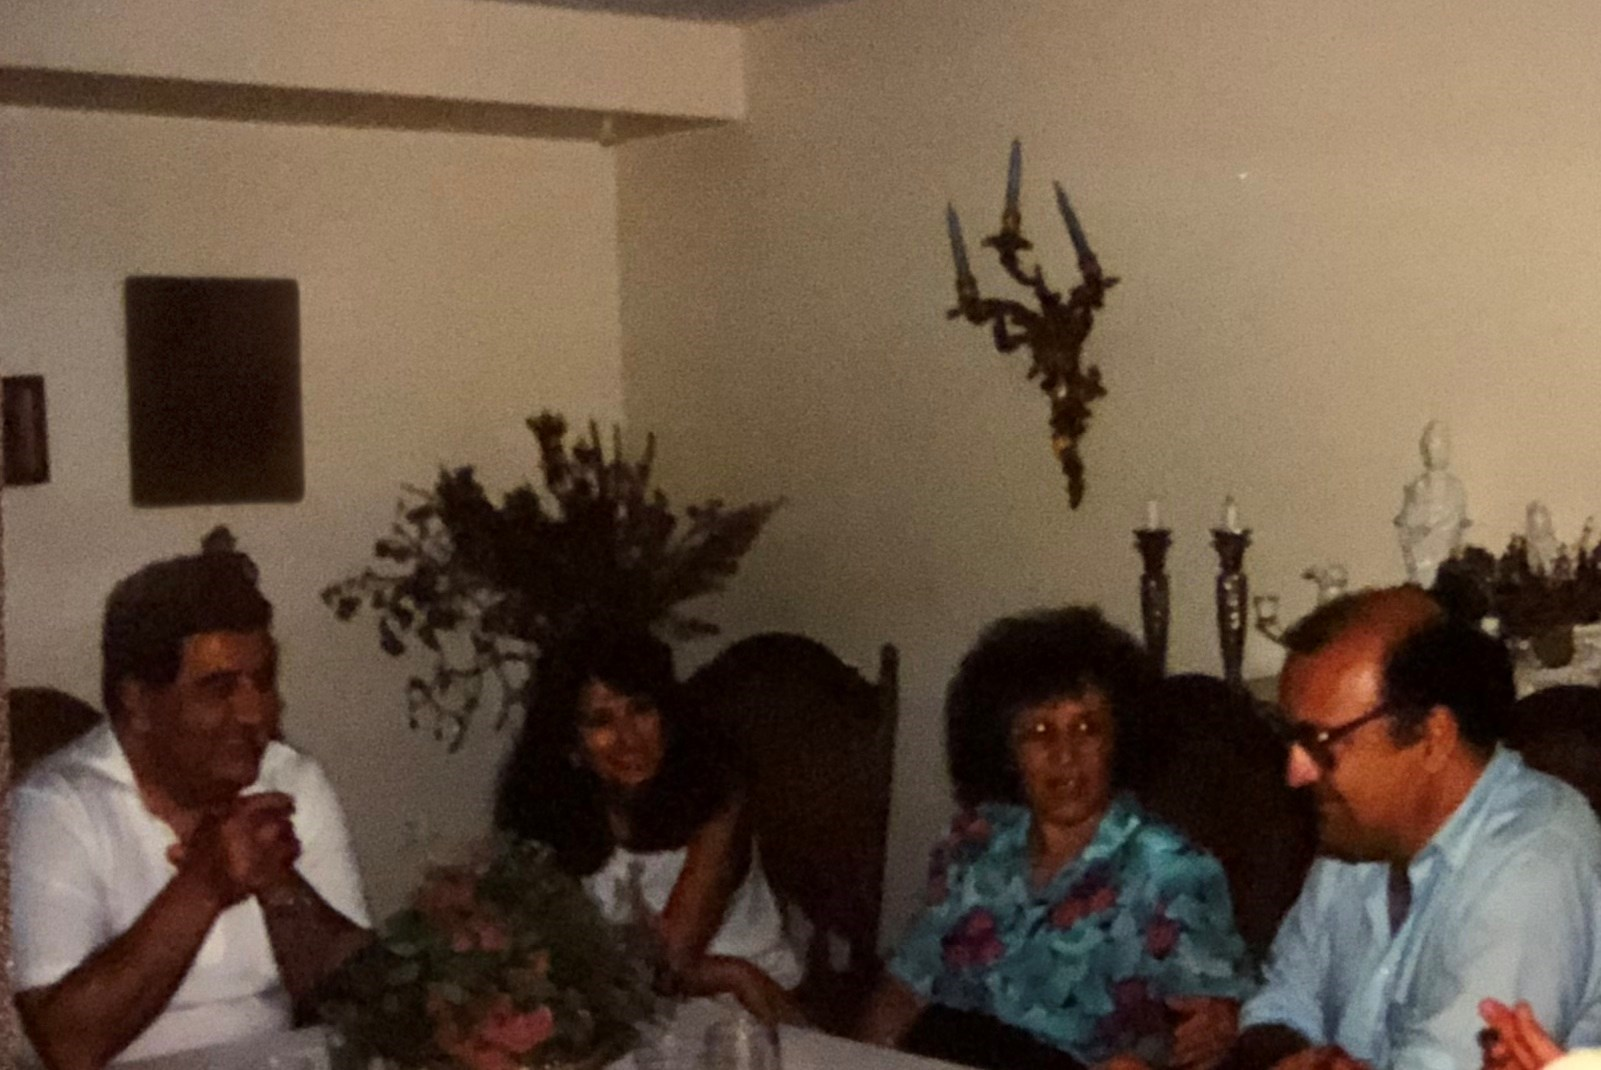 With family. Lincoln, Ma. 1990s.